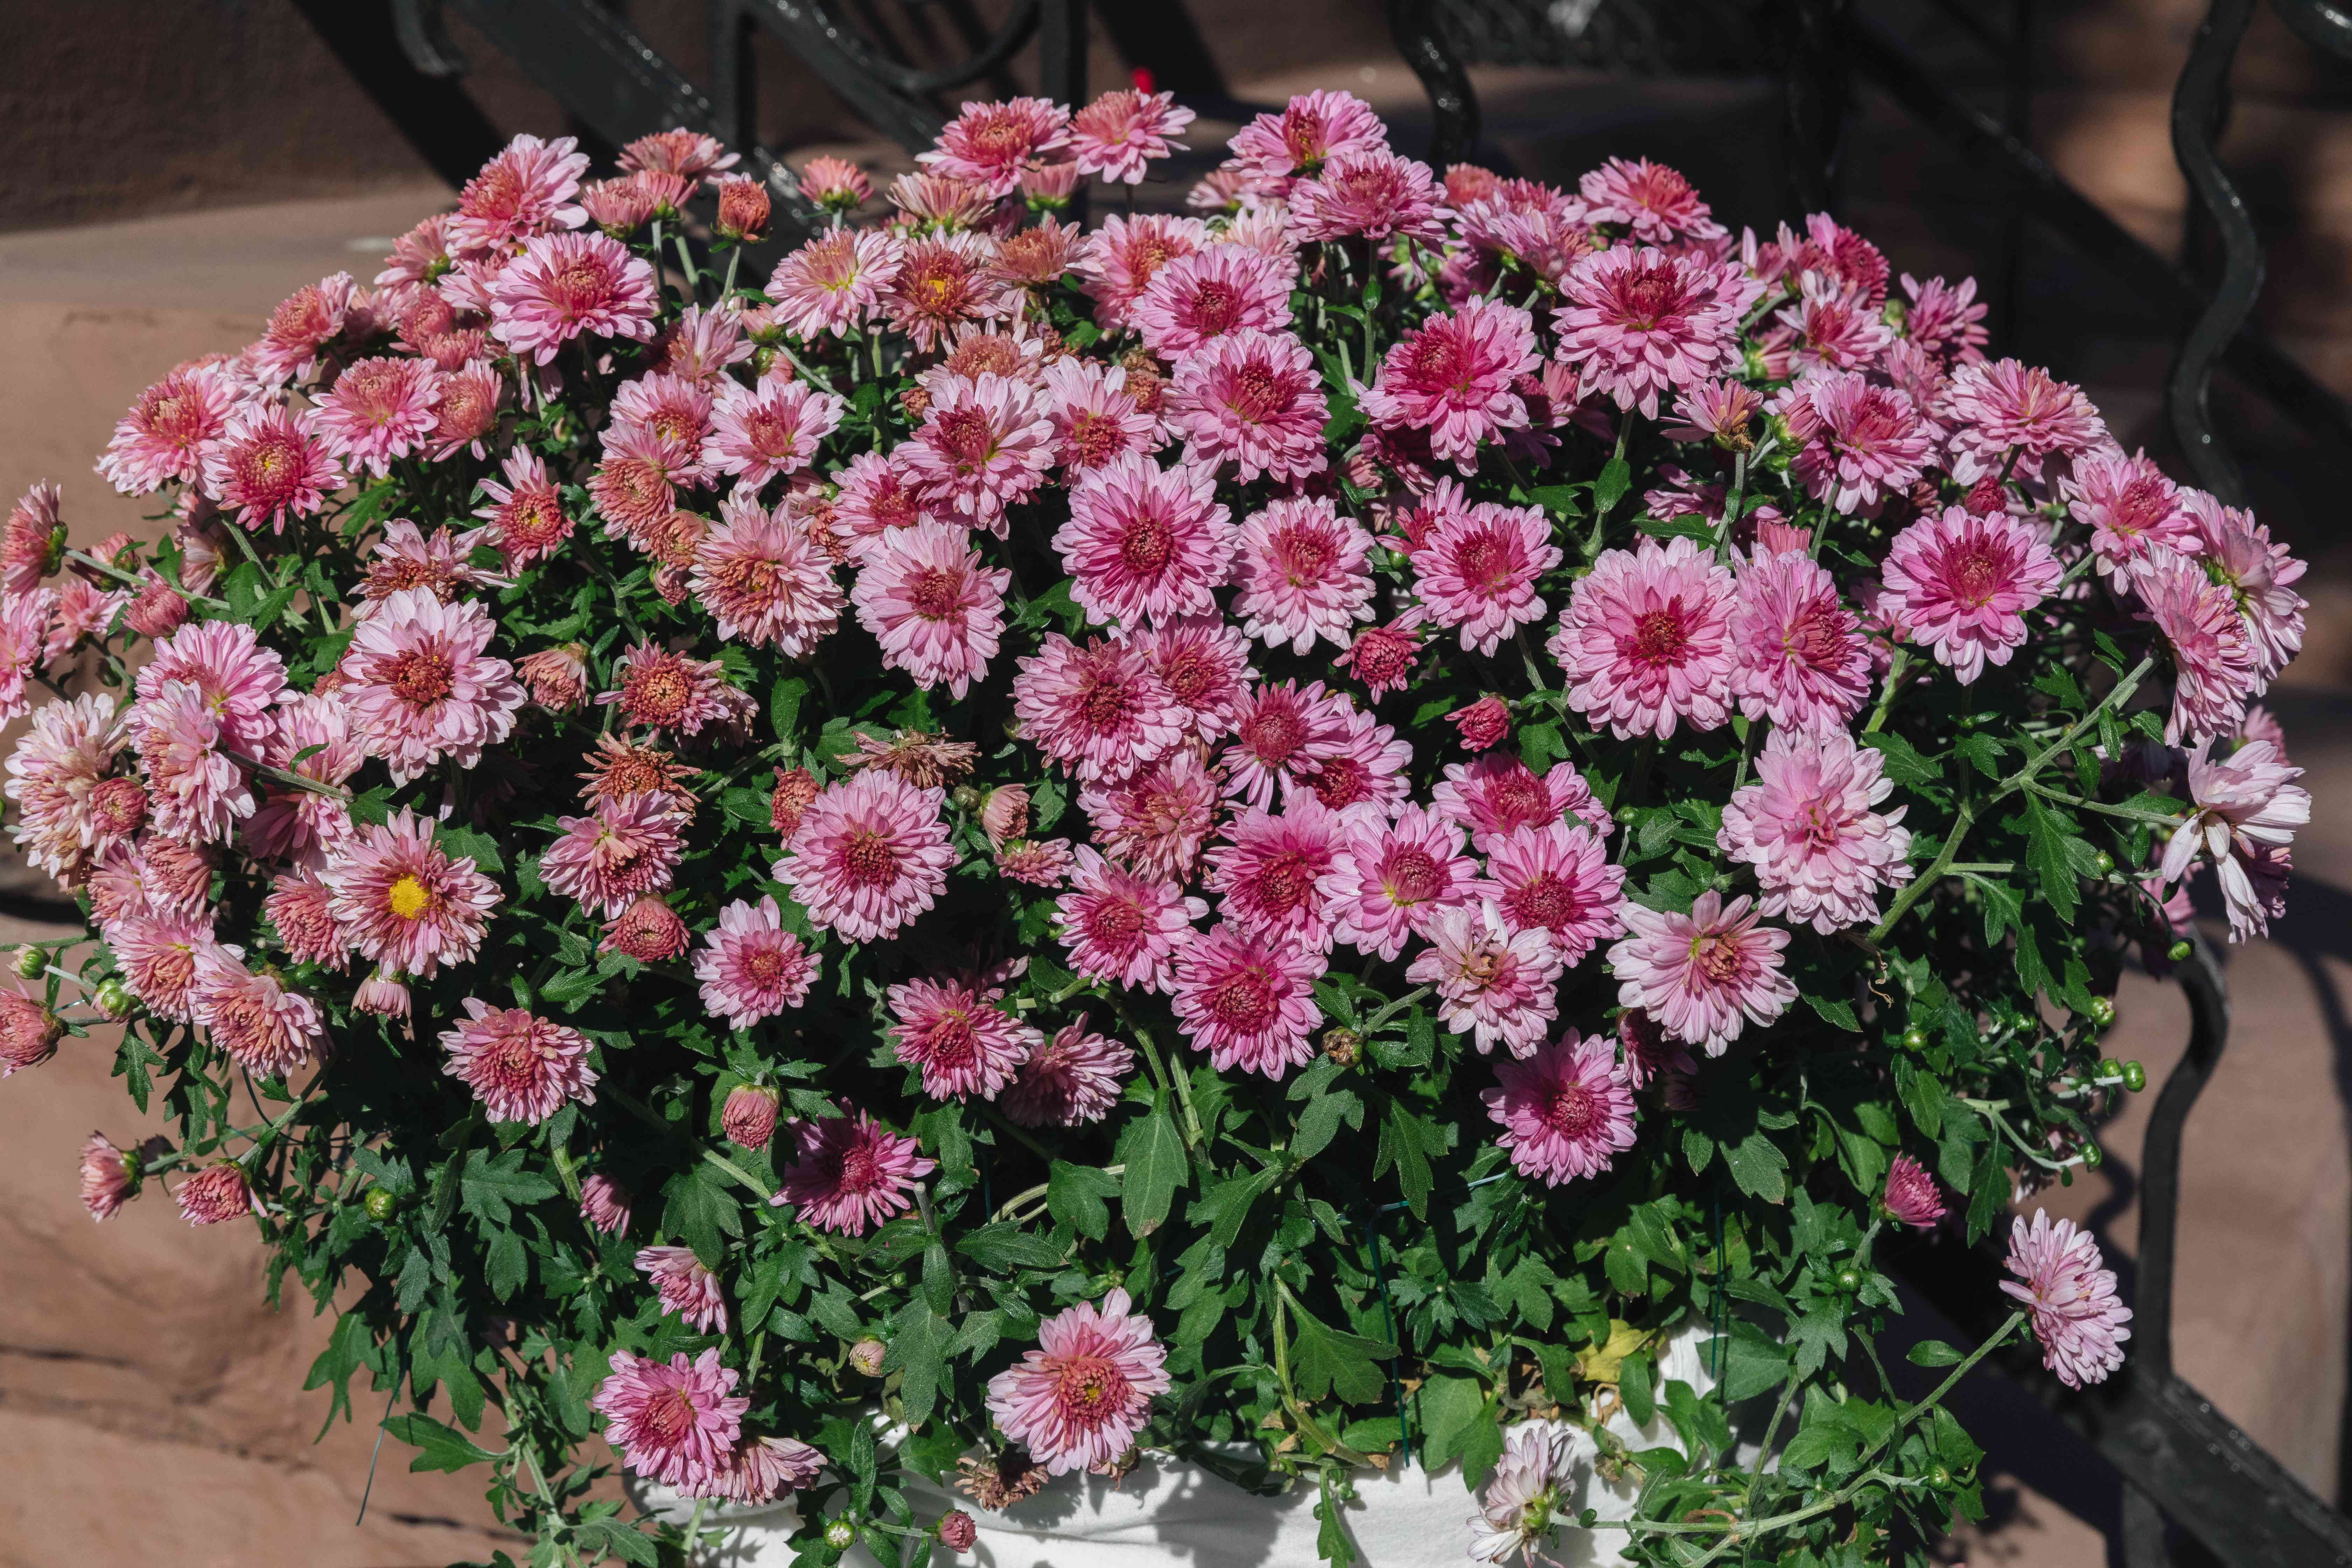 mums growing in a container